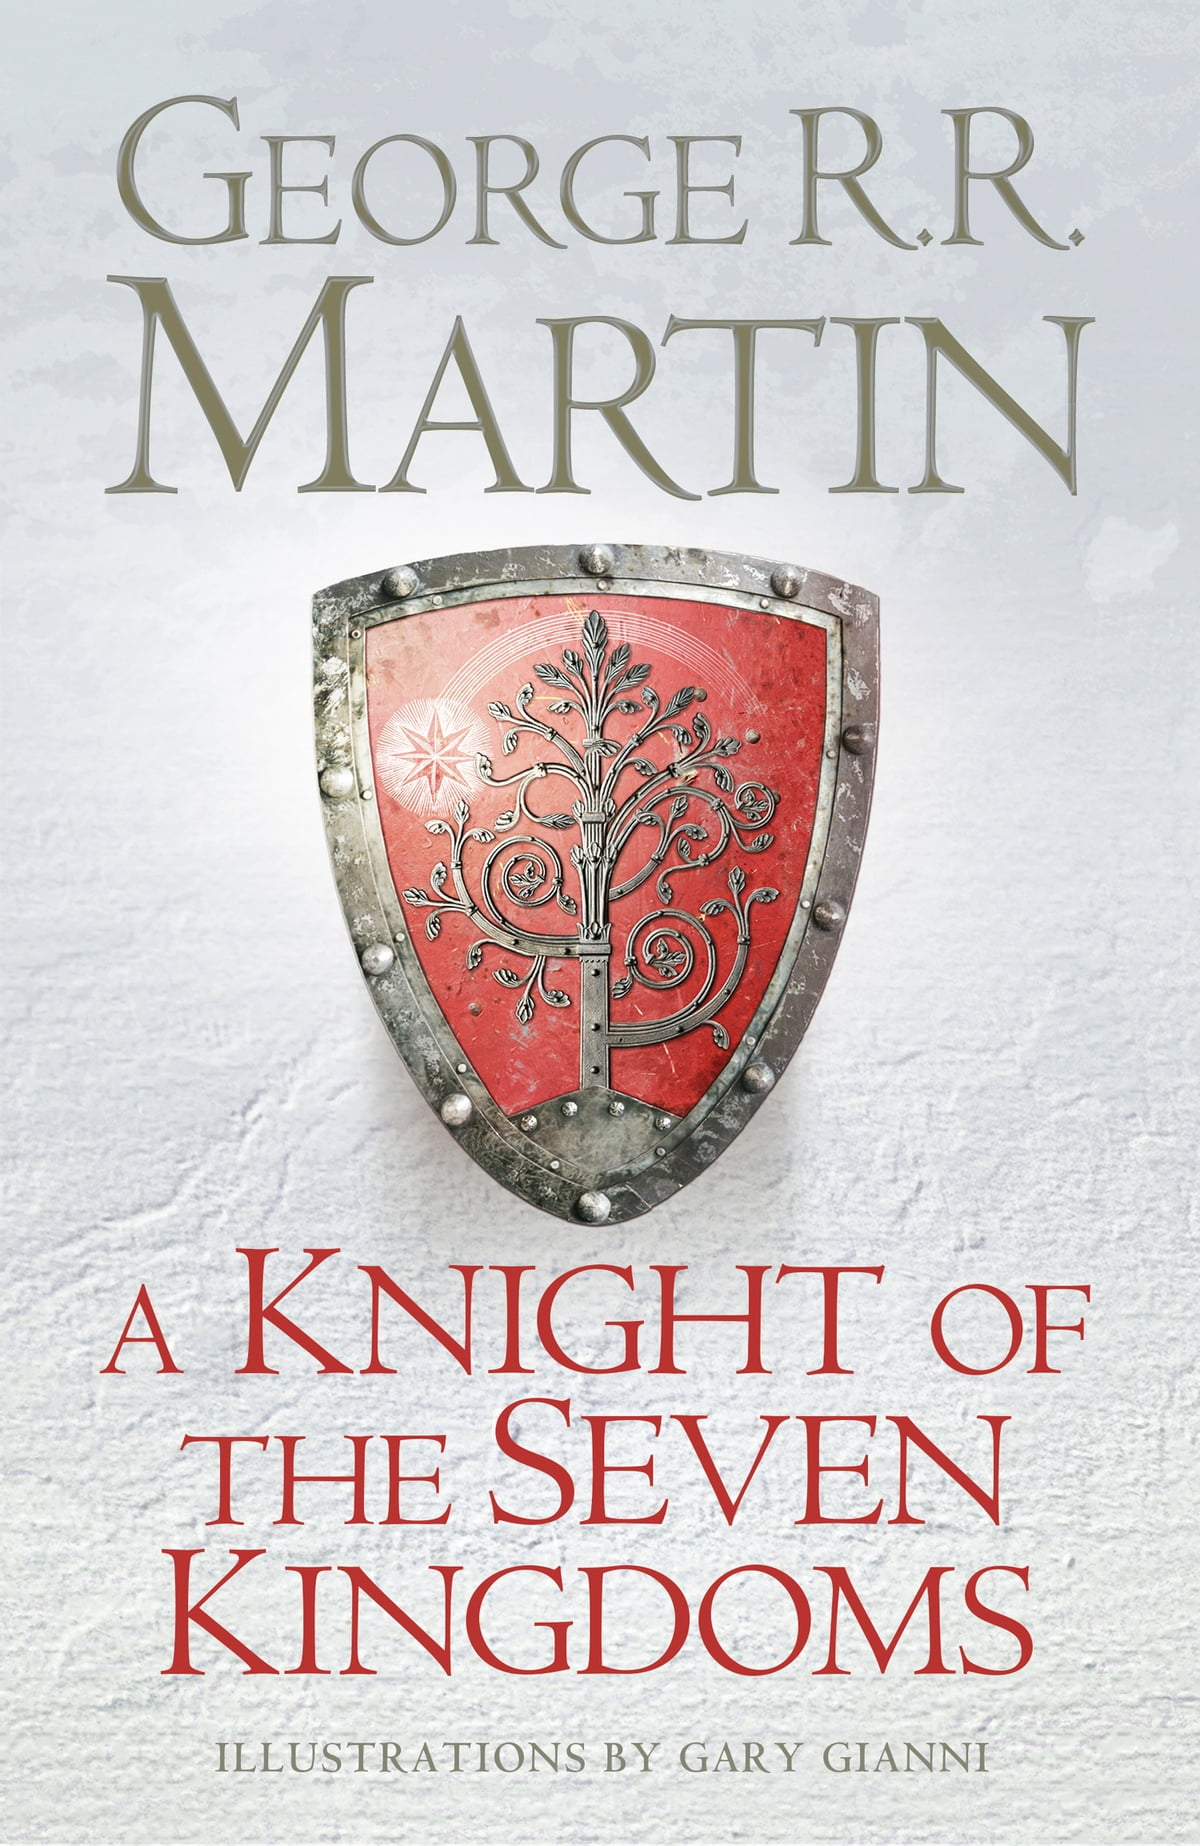 A Knight Of The Seven Kingdoms Ebook By George Rr Martin  9780007500413   Rakuten Kobo